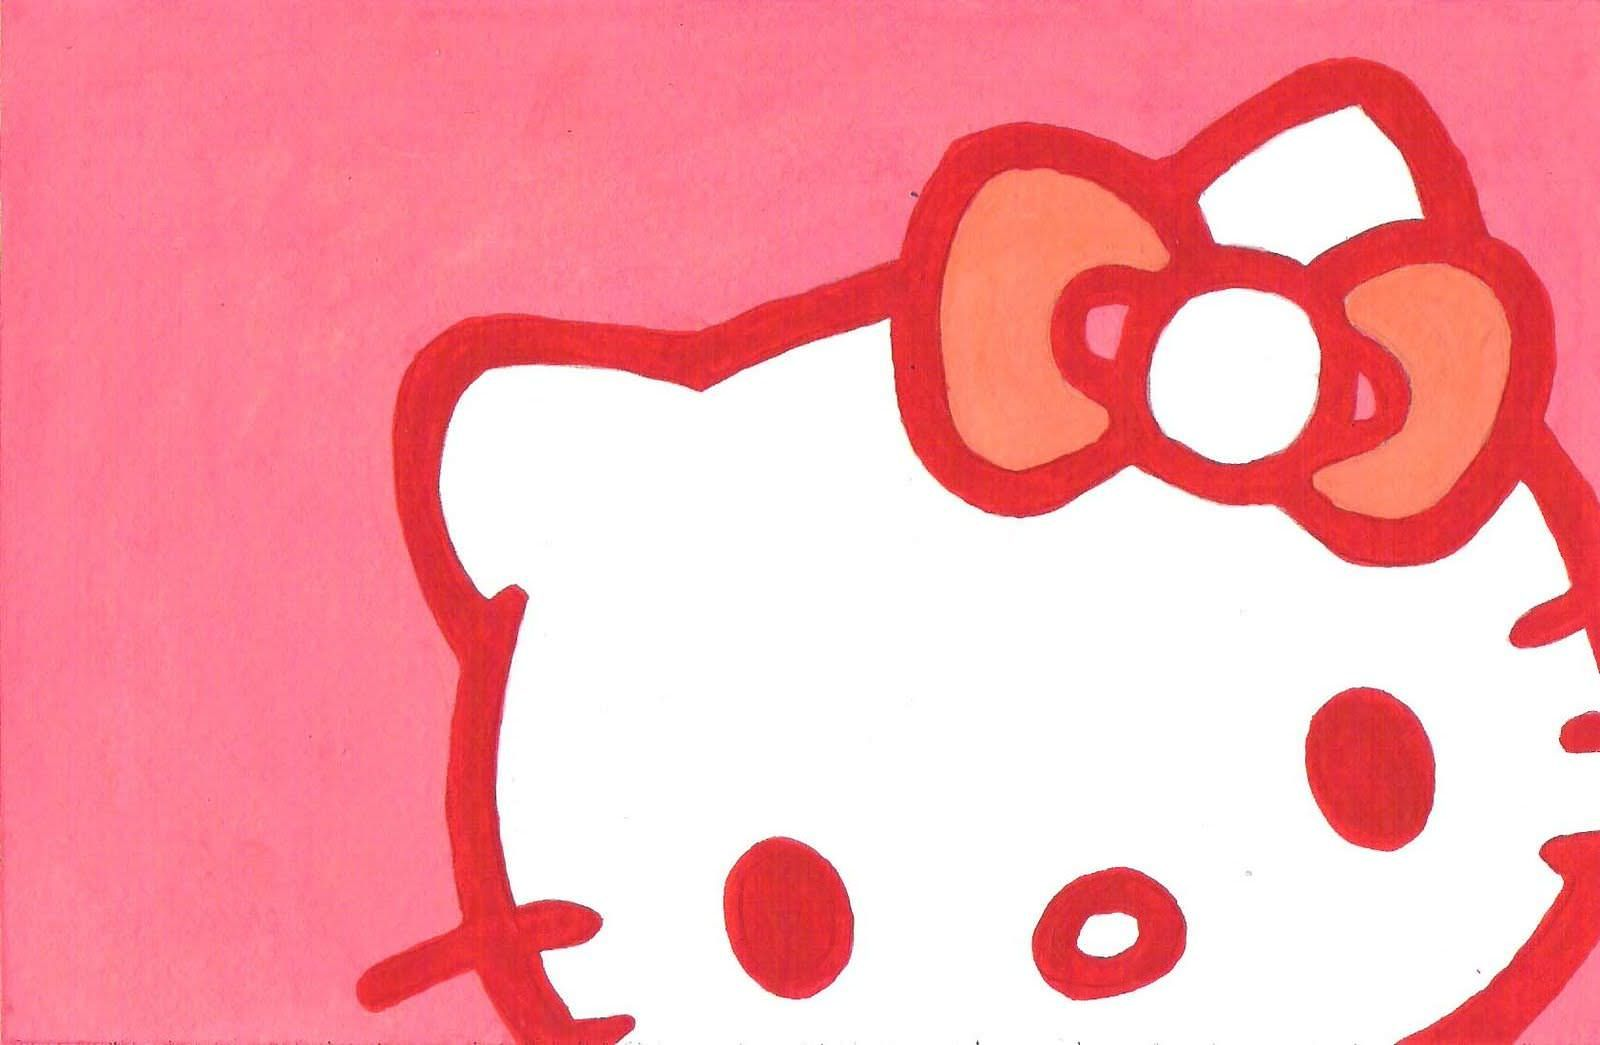 Amazing Wallpaper Hello Kitty Red - 7d3ae74dfe27dc3f26d0d31578b20d9c  Photograph_64682.jpg